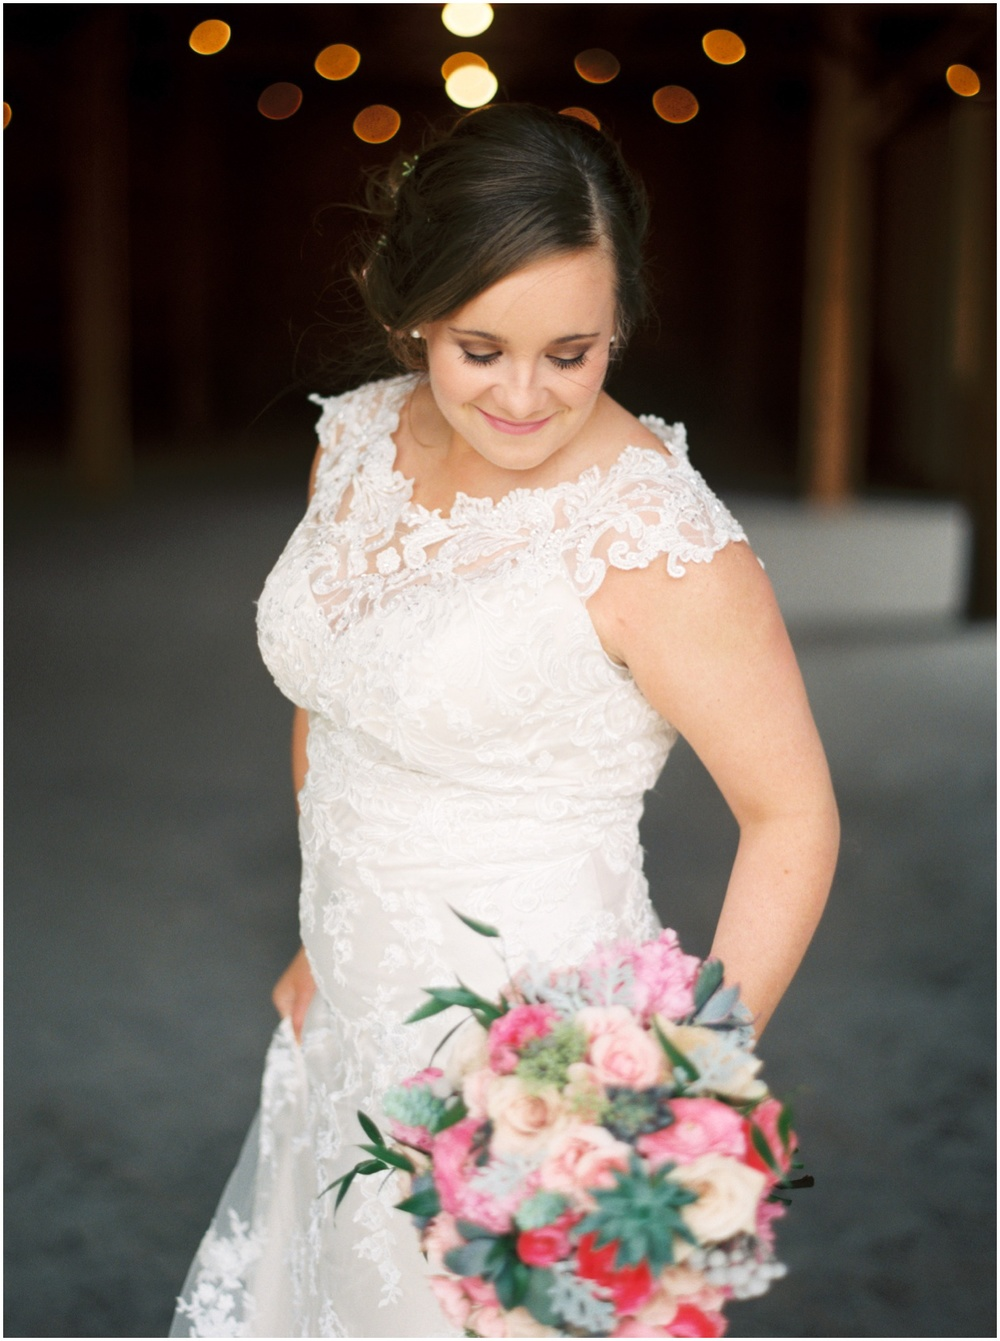 Sarah Best Photography - Claire's Bridals - The Amish Barn at Edge-3_STP.jpg